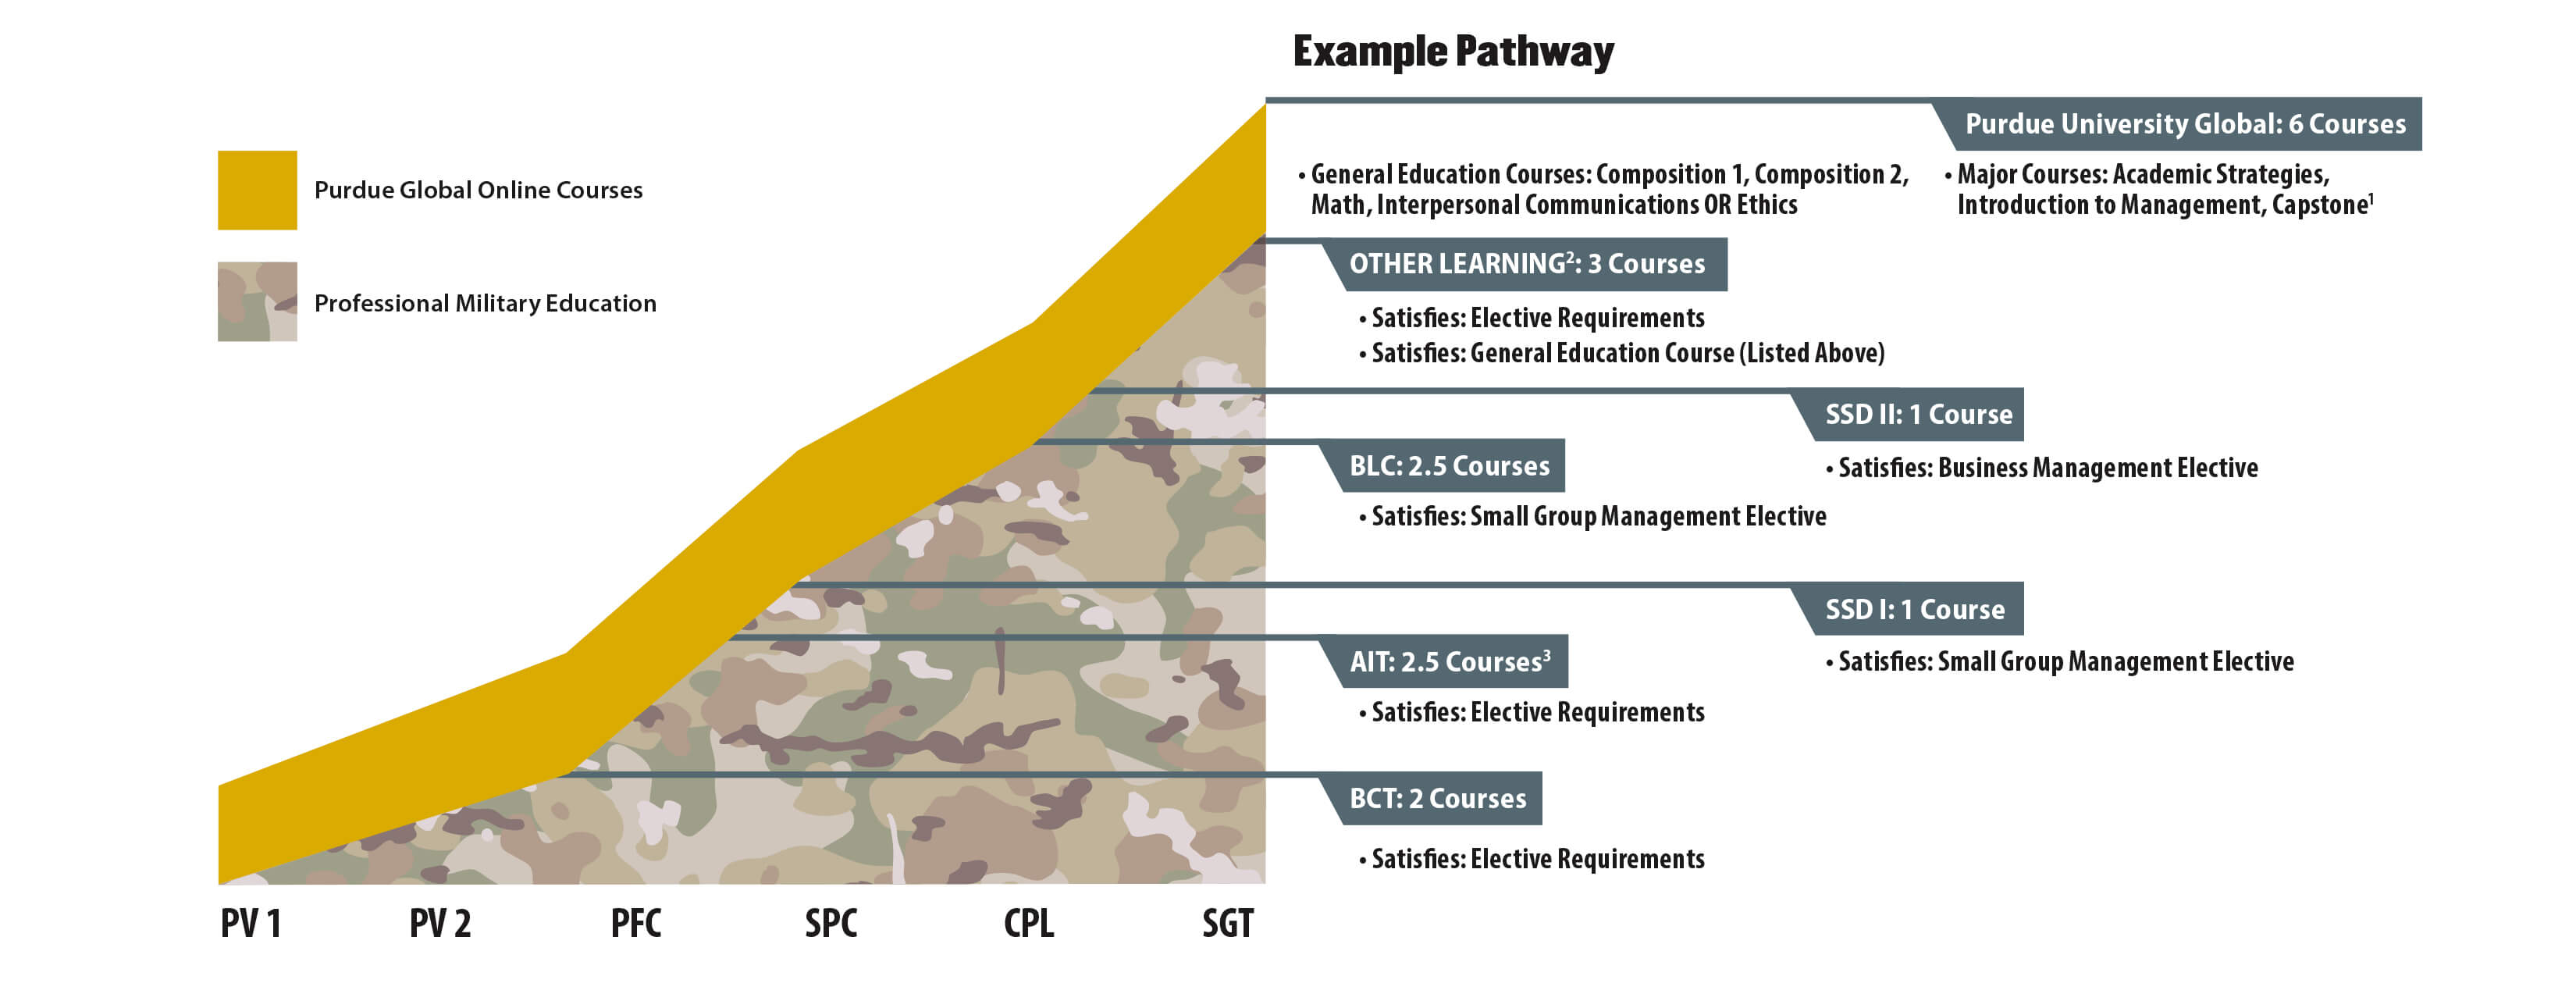 The mountain infographic provides a visual representation of how professional military education (PME) for a soldier may transfer into the Associate of Applied Science in Small Group Management (AAS SGM). In the rough shape of a right triangle, the hypotenuse is a solid gold bar that represents the courses to be completed at Purdue Global. Three of the four general education courses are likely to be completed at Purdue Global. These include: Composition 1, Math, Composition 2, and Interpersonal Communications or Ethics. The remaining major courses are Academic Strategies, Introduction to Management, and the Capstone. The main body of the triangle presents as a camouflage pattern and represents the military learning that will likely transfer into the AAS SGM program. Along the base of the triangle are ranks a solider receives as they progress through their career. These include PV1 (Private), PV2 (Private Second Class), PFC (Private First Class), SPC (Specialist), CPL (Corporal), and SGT (Sergeant). The specific military learning completed as a soldier advances in rank is listed on the right side of the triangle with horizontal lines crossing into the body of the triangle. The horizontal lines stop in alignment with the ranks where the military learning is completed. The military training includes: Basic Combat Training (BCT) for 2 courses, Advanced Individual Training (AIT) for 2.5 courses, Structured Self Development I (SSDI) for 1 course, Basic Leader Course (BLC) for 2.5 courses, Structured Self Development II (SSDII) for 1 course, and Other Learning for 3 courses. When all of the soldier's professional military education is taken in to consideration, they would have only 6 courses remaining to complete their Associate of Applied Science in Small Group Management at Purdue Global.